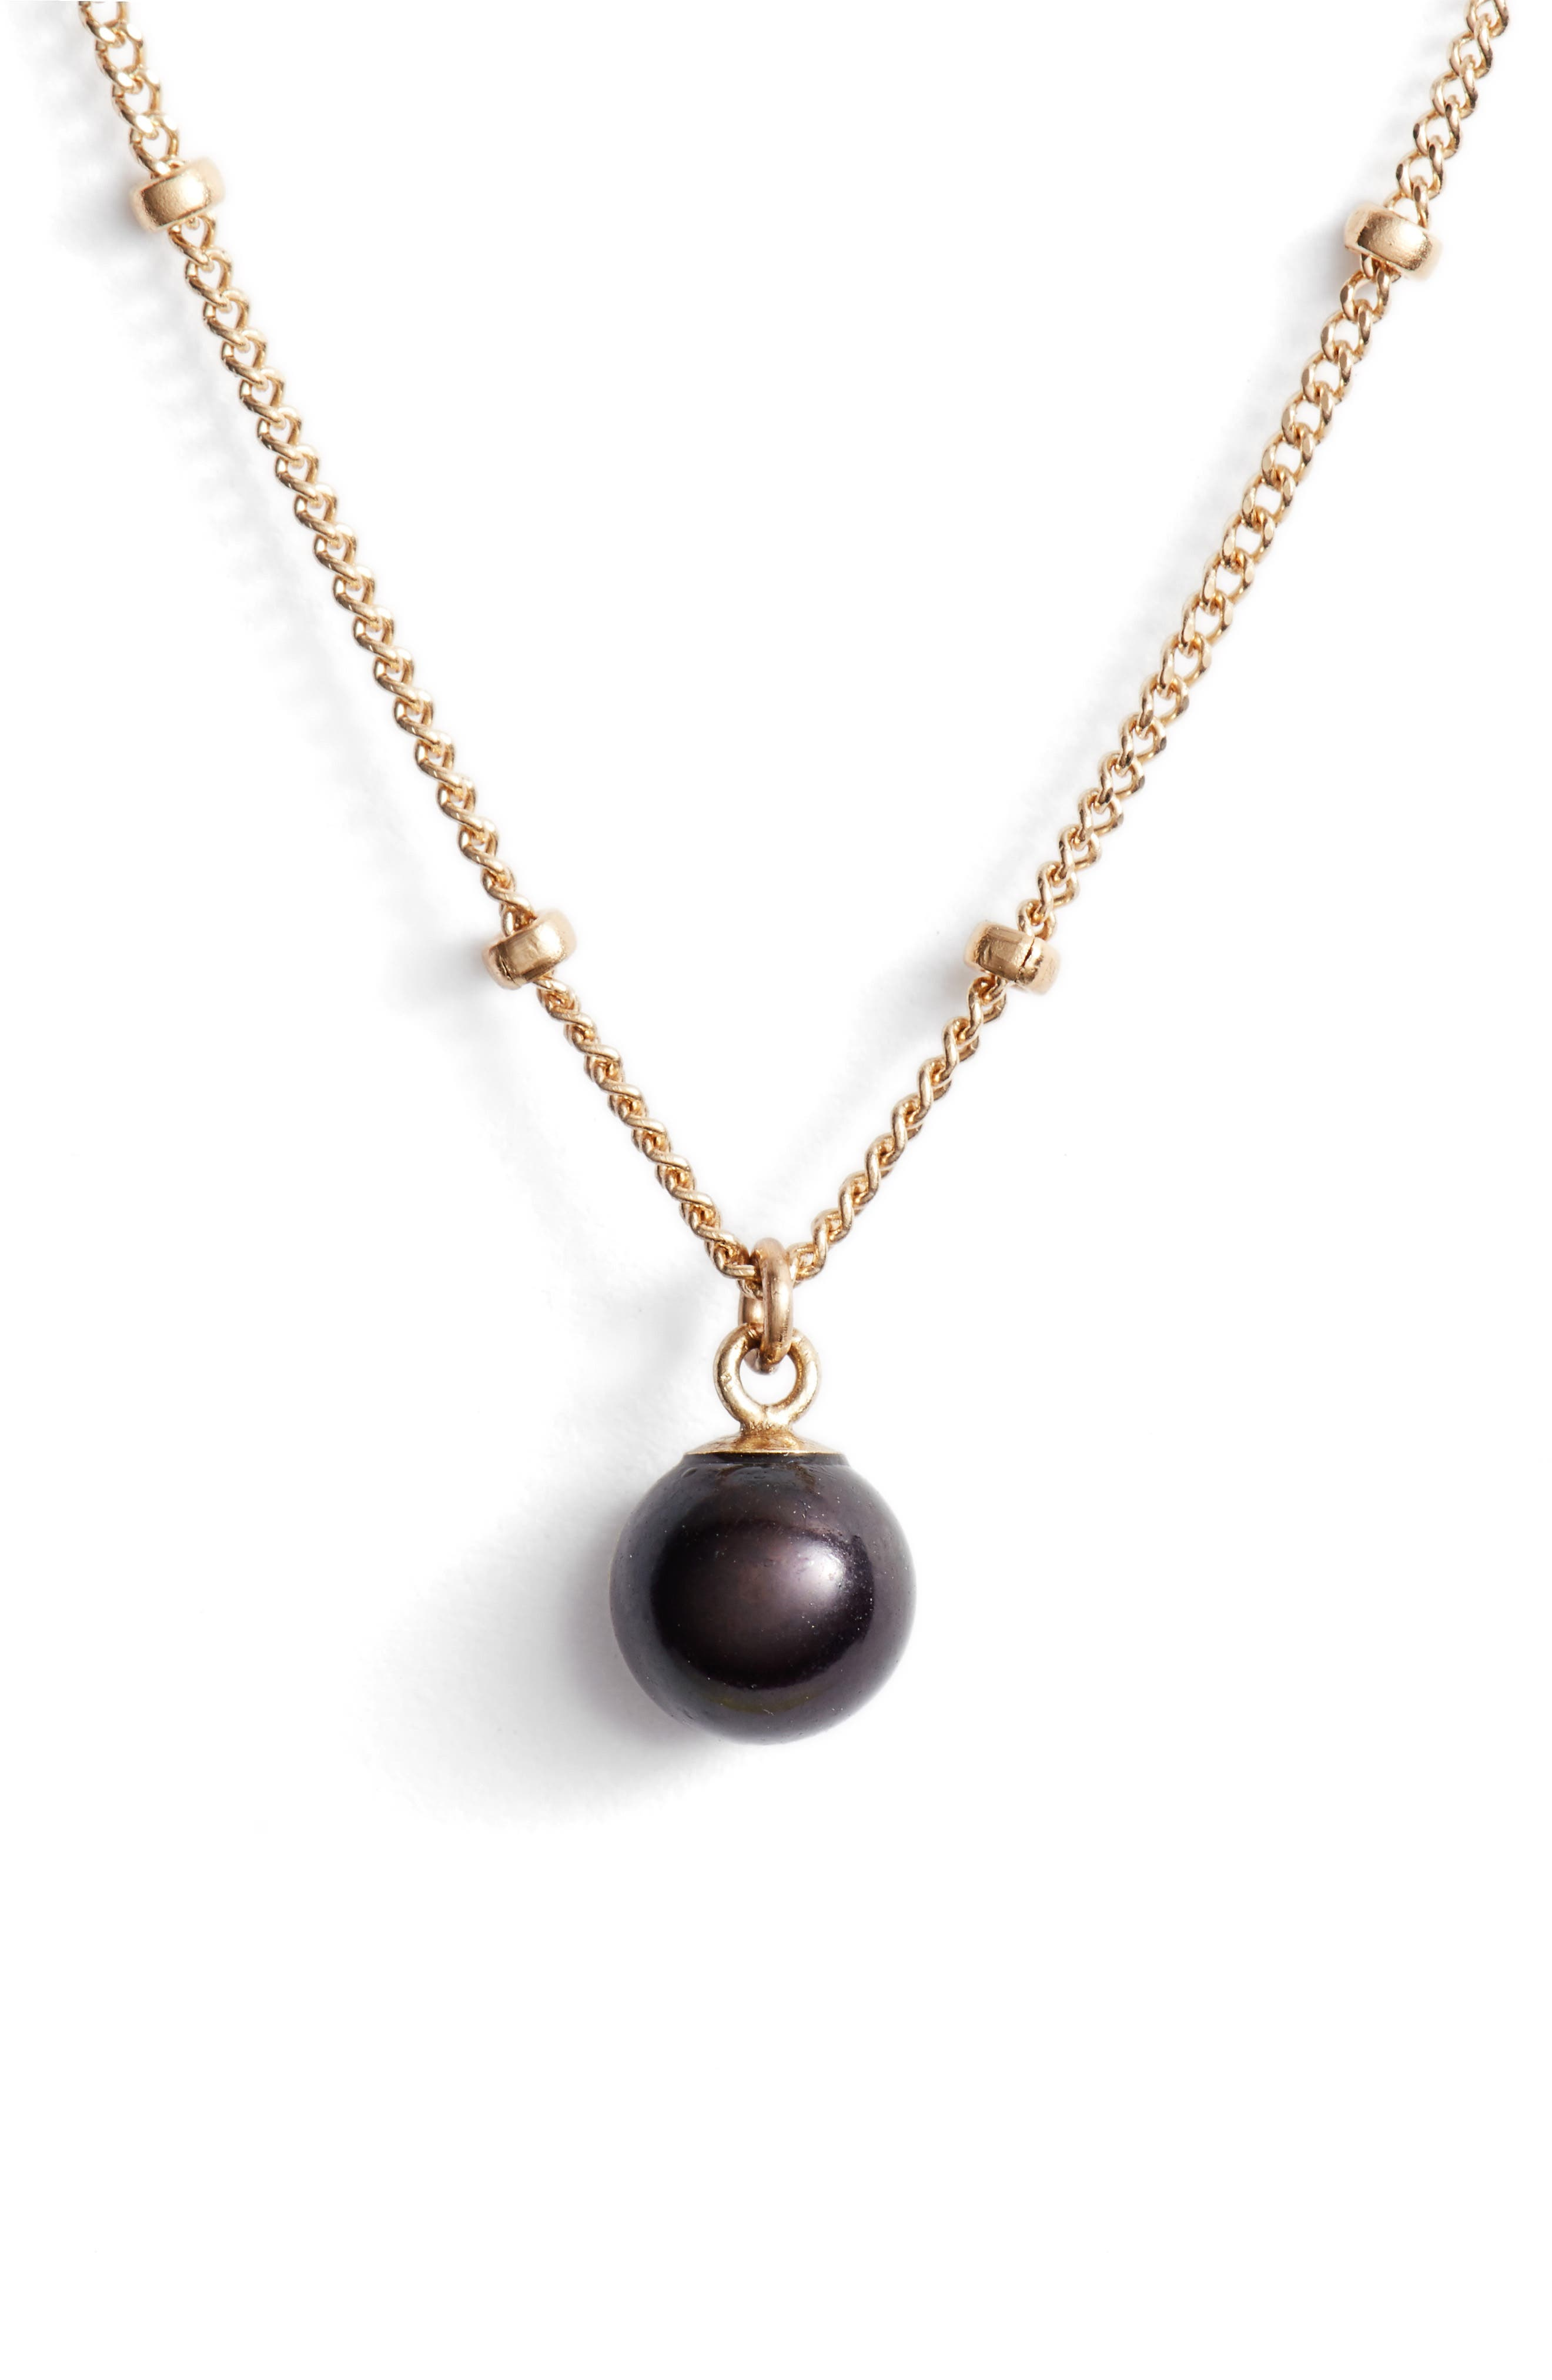 Baby Pearl Bead Choker Necklace,                         Main,                         color, YELLOW GOLD/ BLACK PEARL